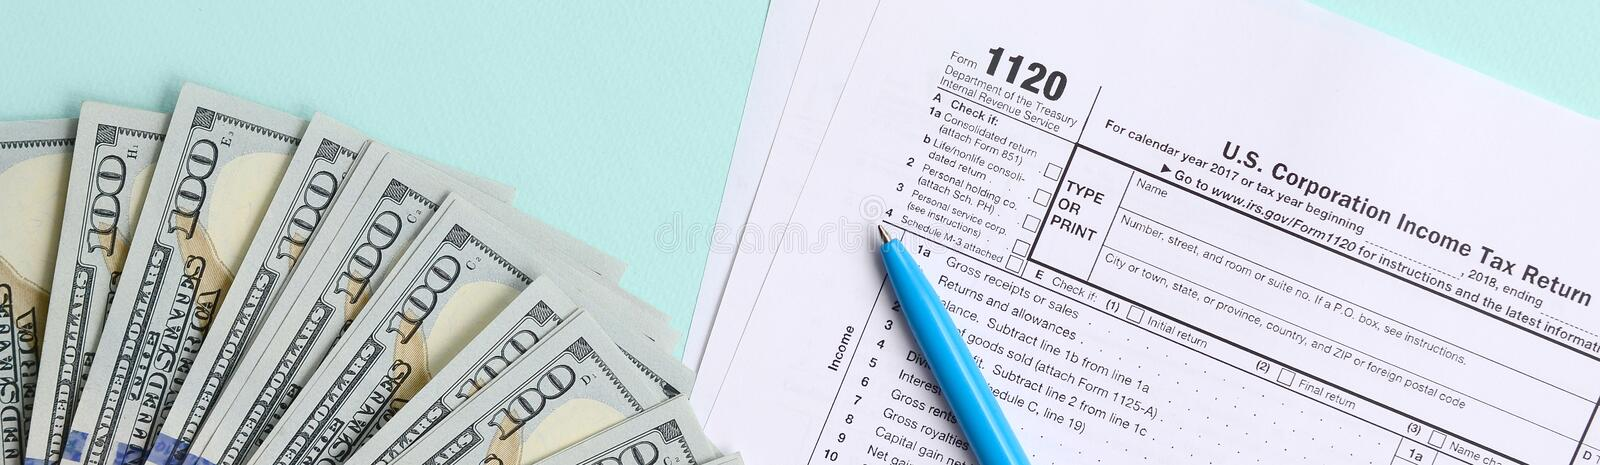 1120 tax form lies near hundred dollar bills and blue pen on a light blue background. US Corporation income tax return.  stock photo